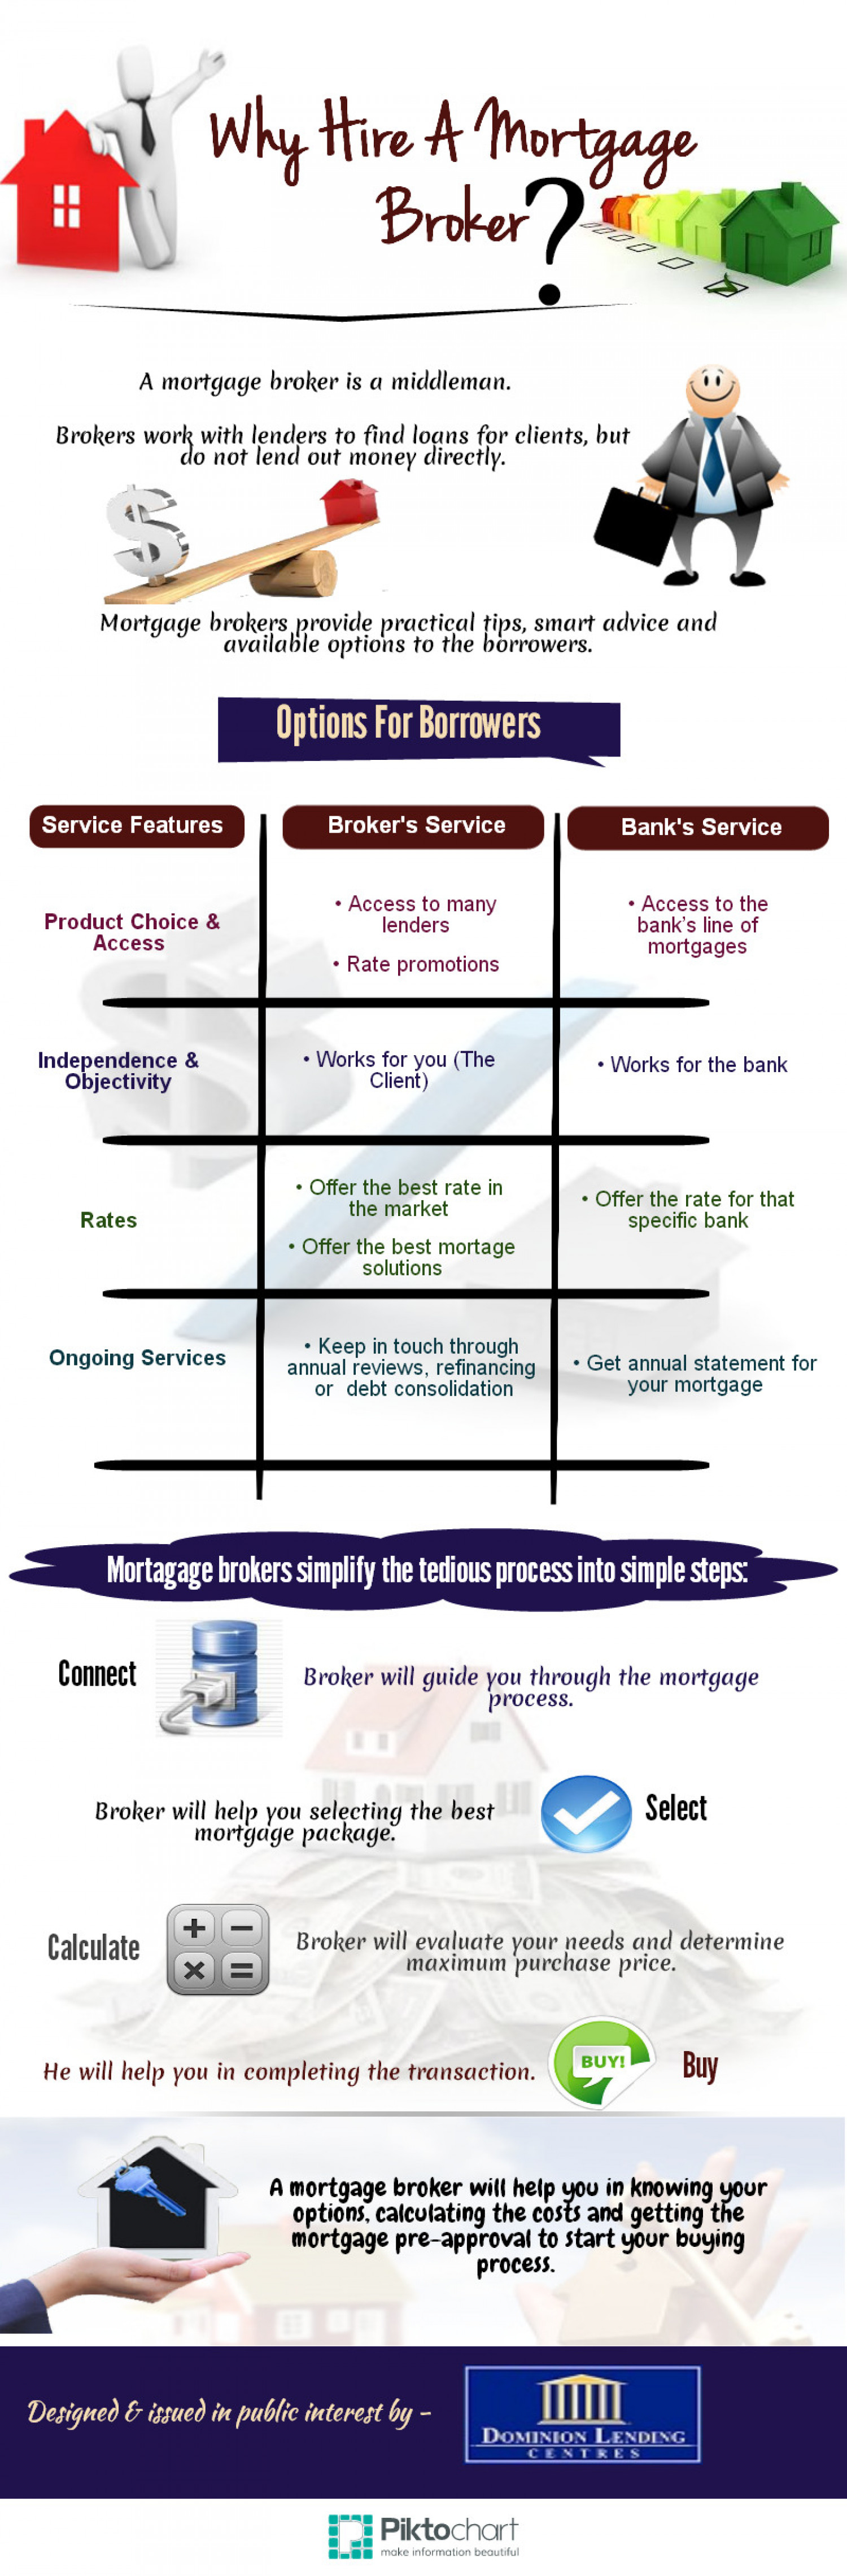 Why Hire a Mortgage Broker Infographic